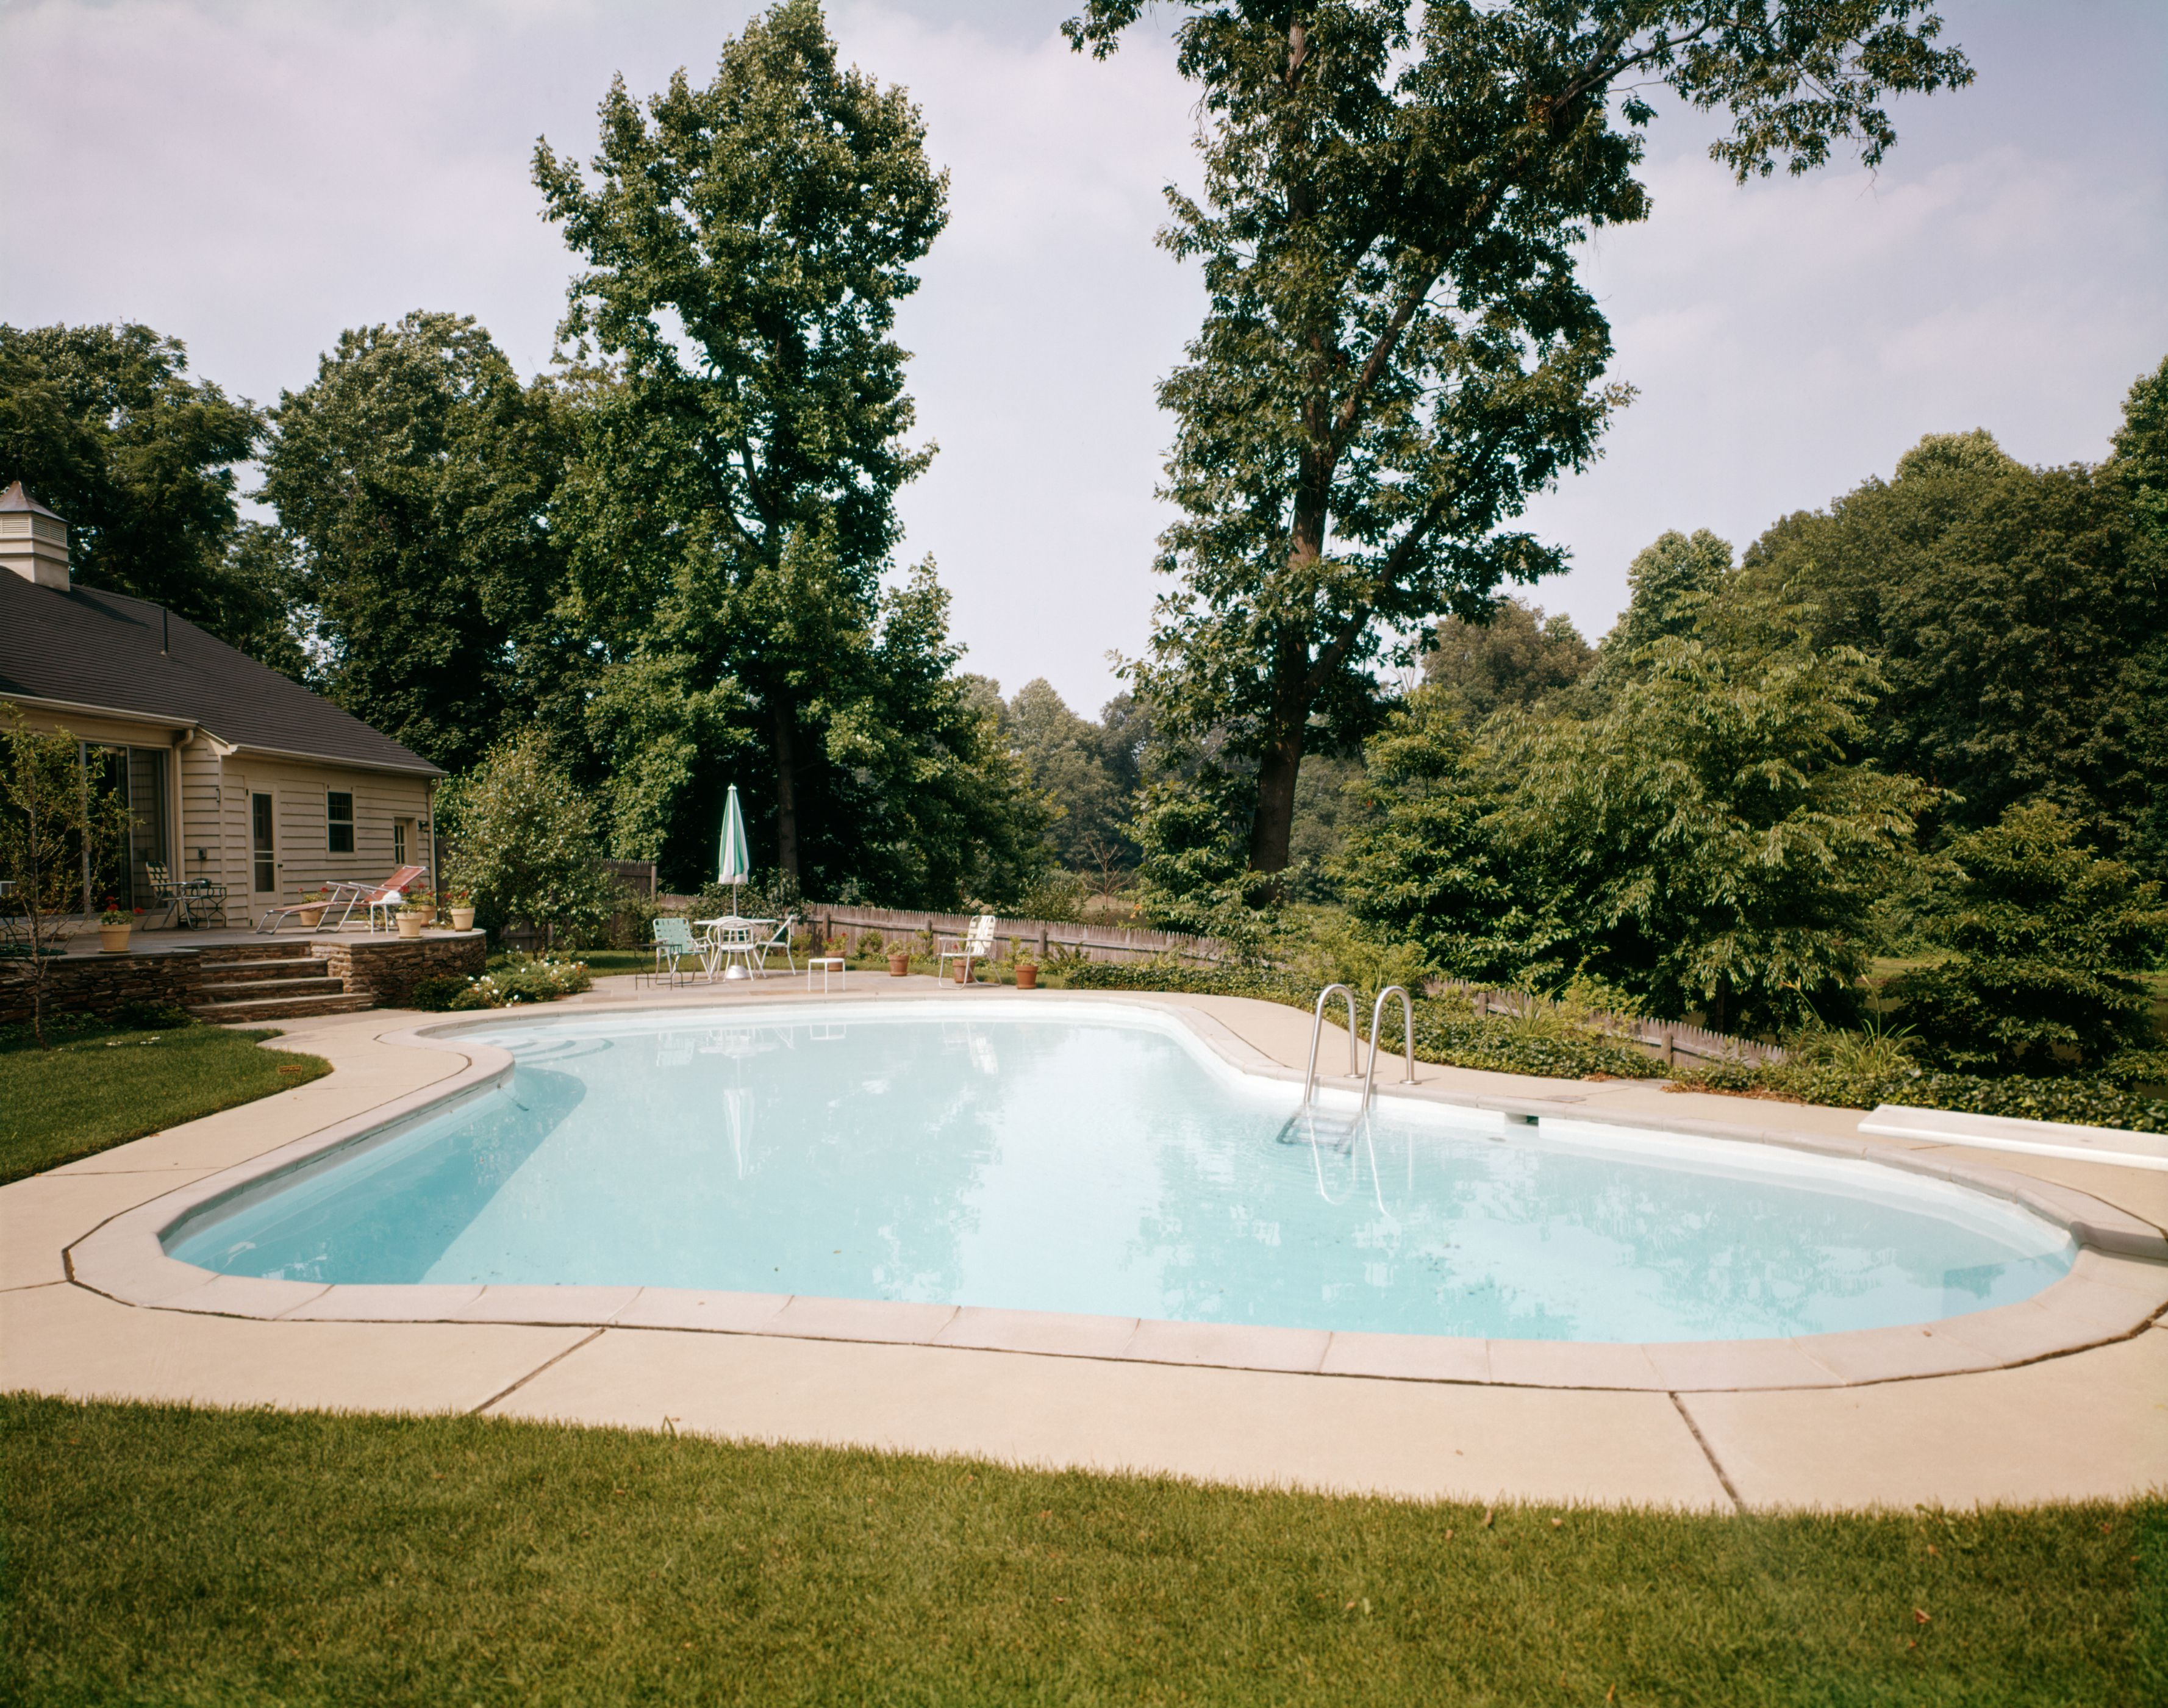 What to know about swimming pool stabilizer levels for Pool design 1970